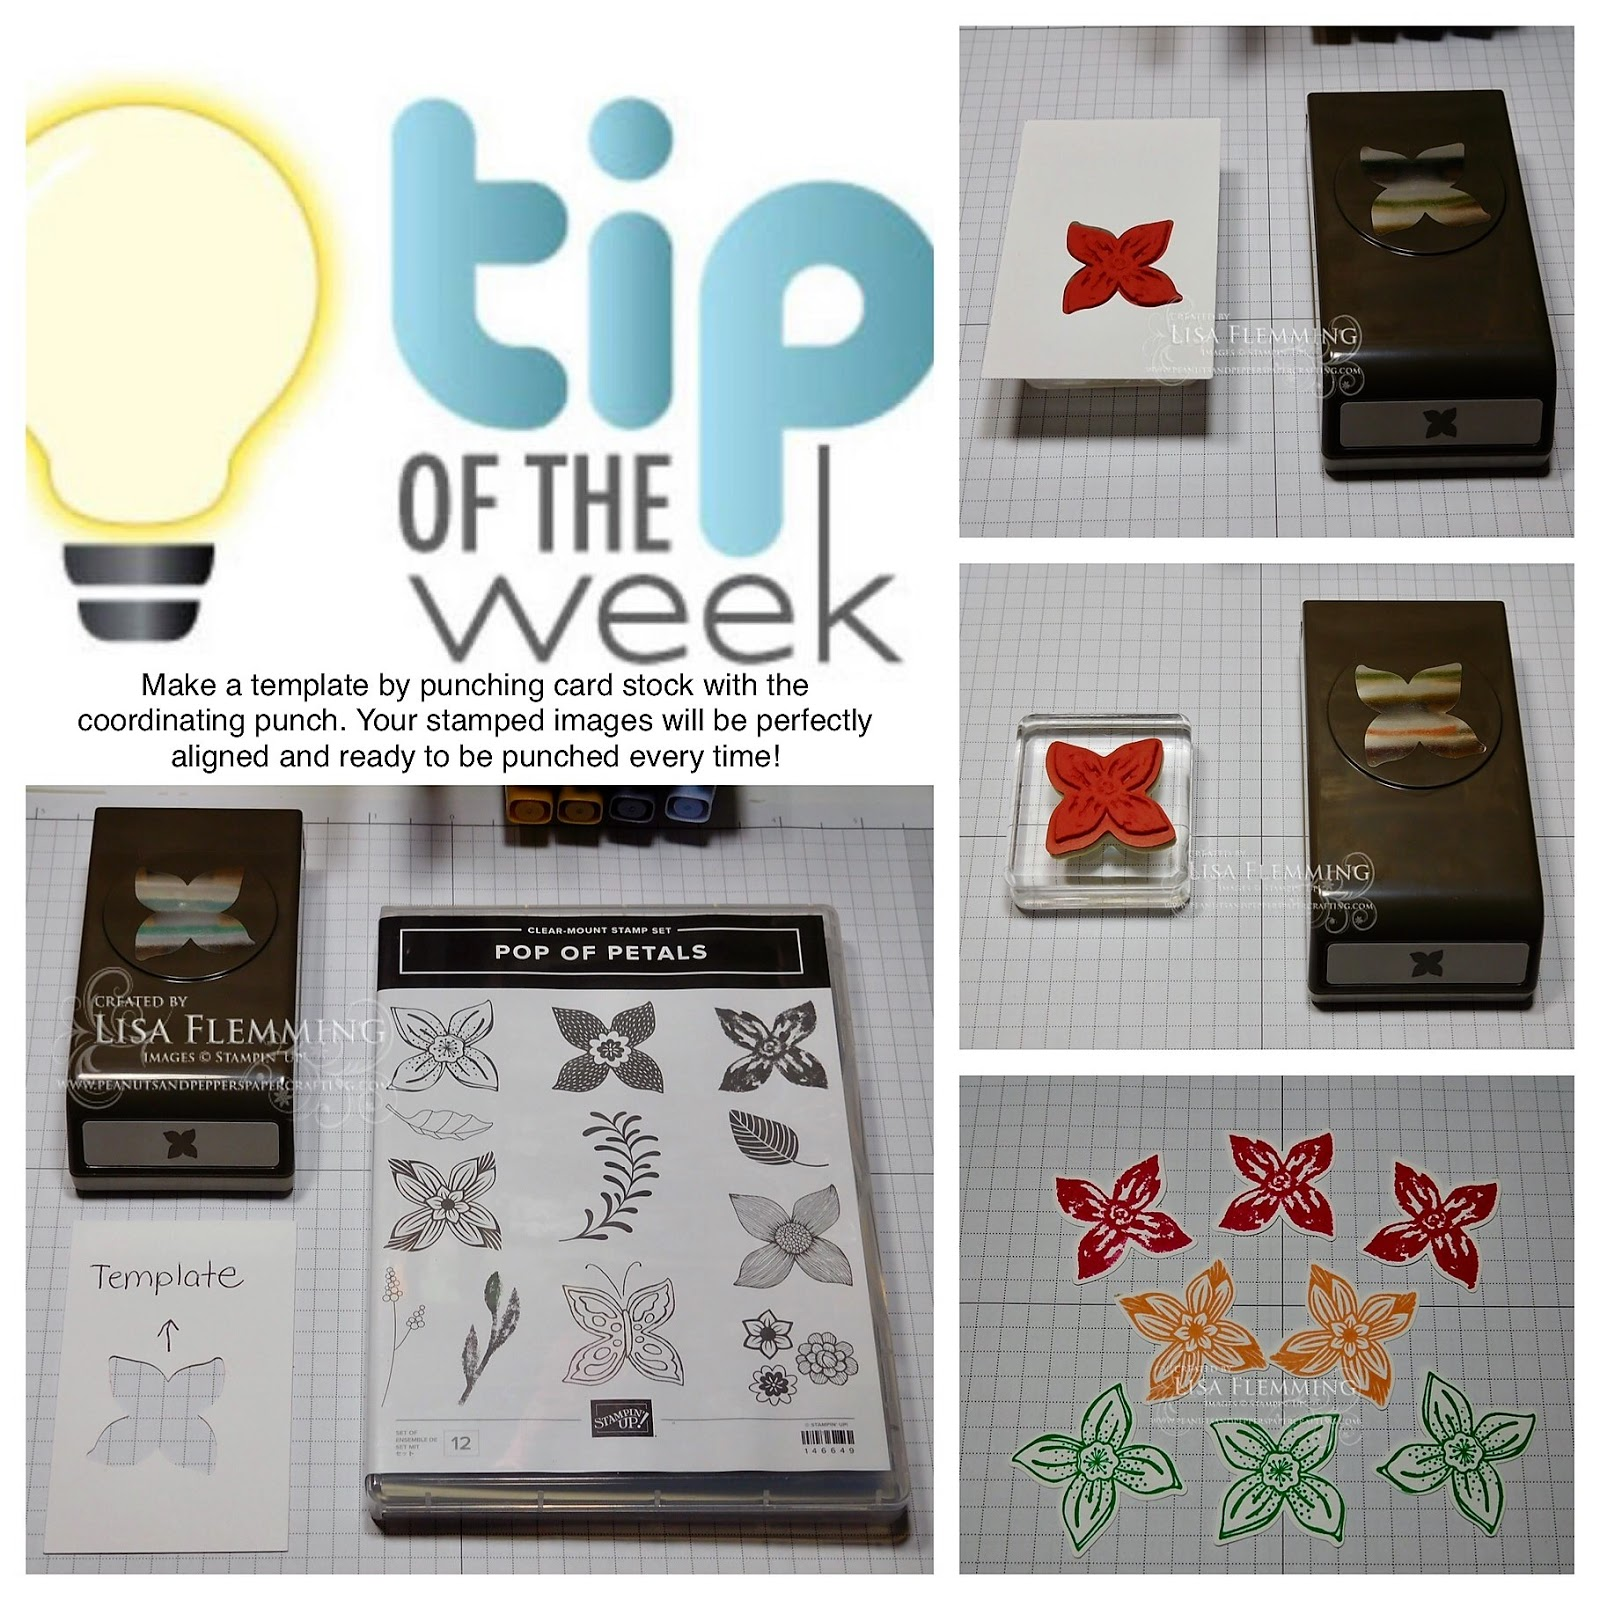 Peanuts And Peppers Papercrafting Tuesday Tip Punch Templates